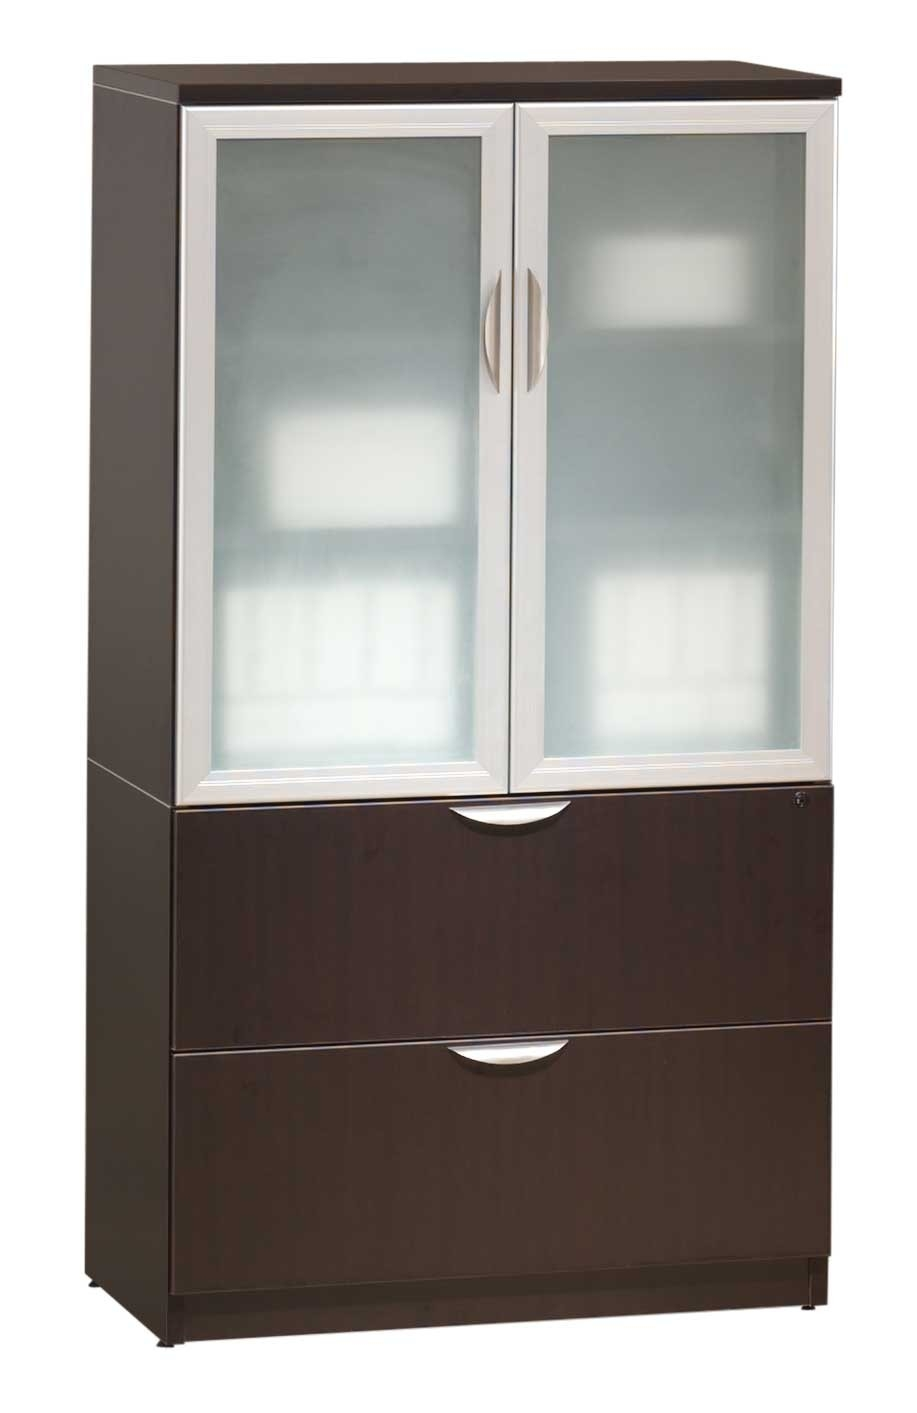 Tall Media Storage Cabinet Glass Doortall storage cabinets with sliding doors roselawnlutheran